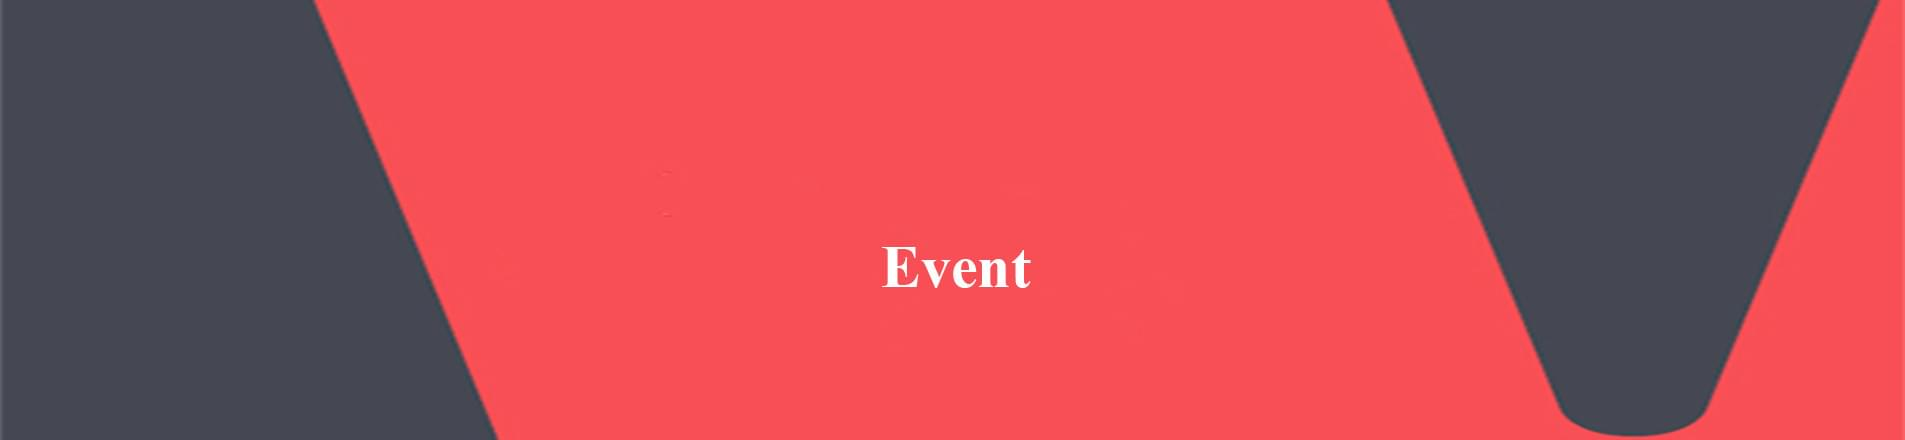 The word event on red VERCIDA branded background